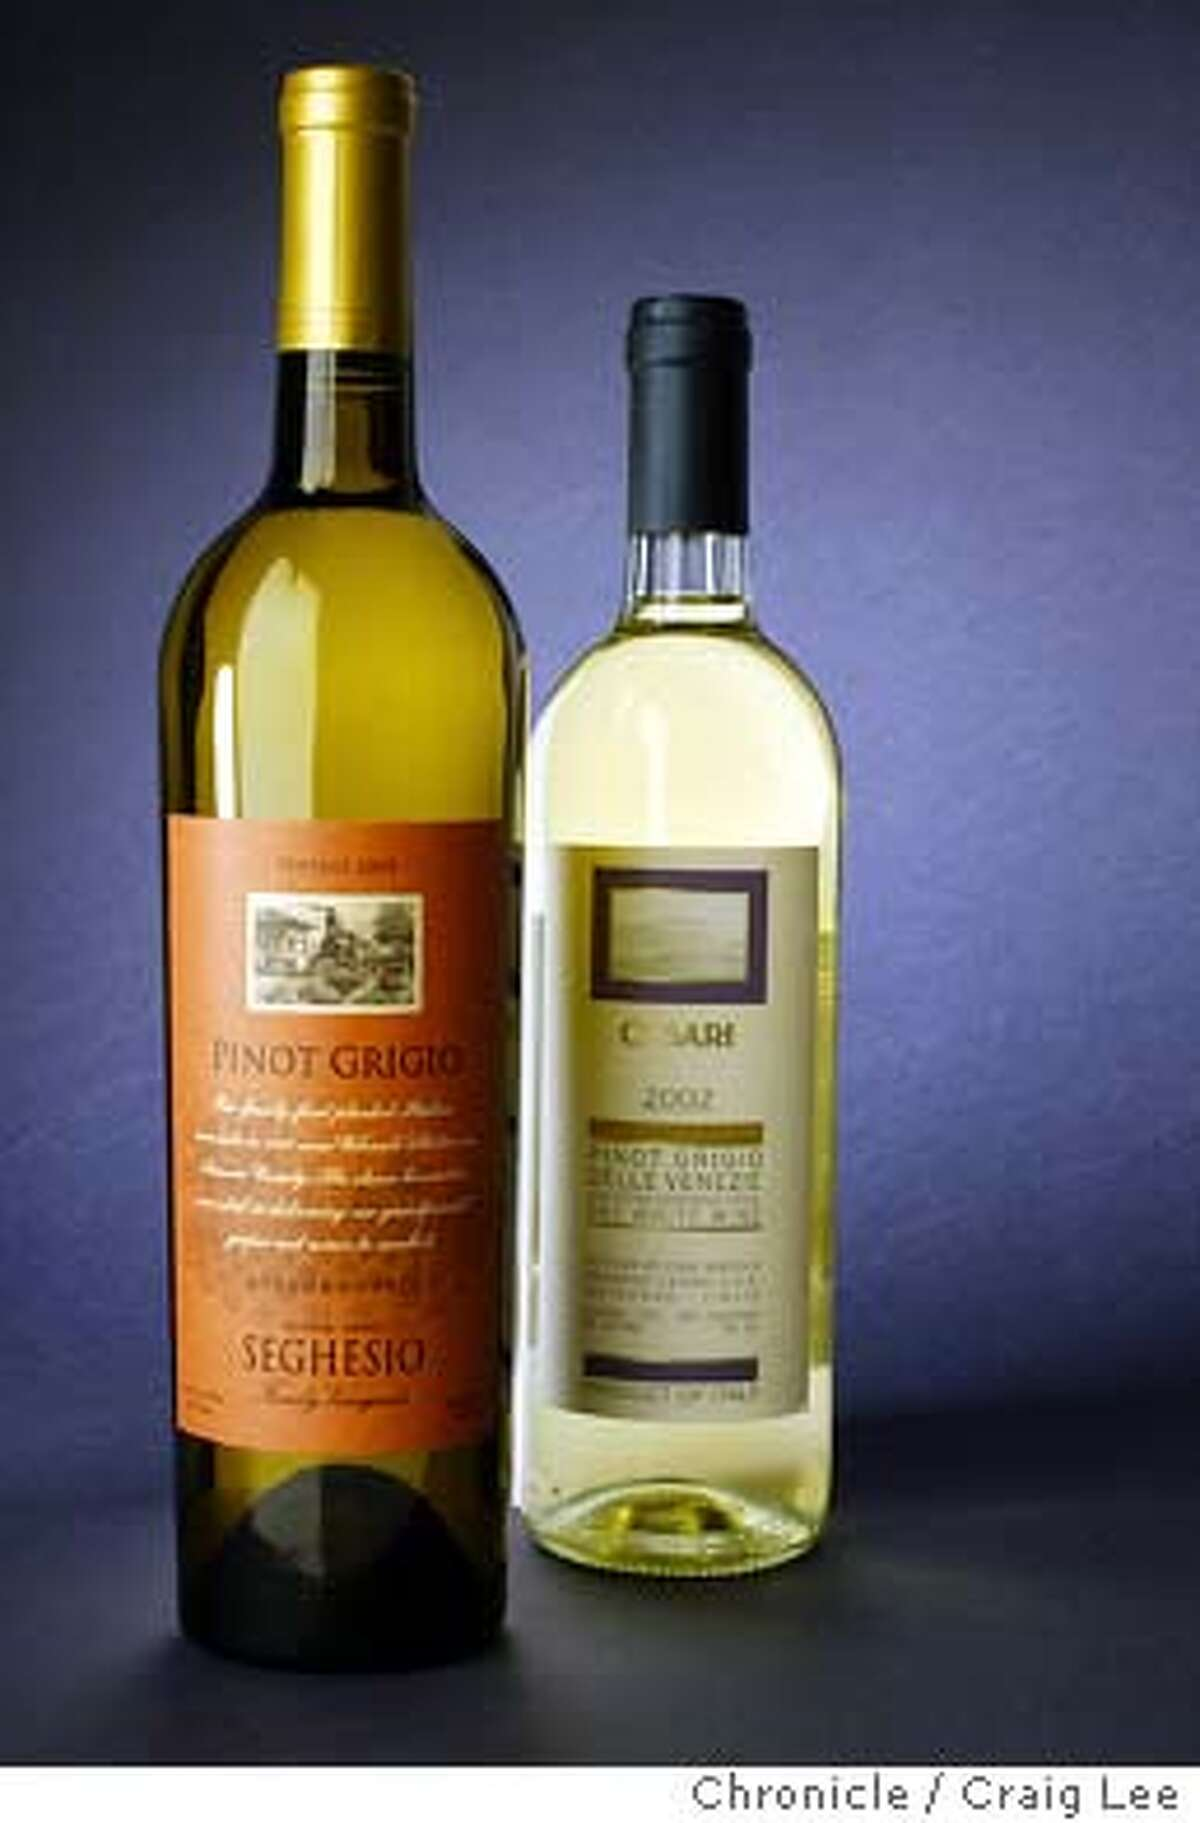 Photo of 2002 Seghesio Pinot Grigio Sonoma County (left), and 2002 Cesari Pinot Grigio Italy (right). Wine story on Italian-style wines made by California producers. Event on 3/22/04 in San Francisco. Craig Lee / The Chronicle